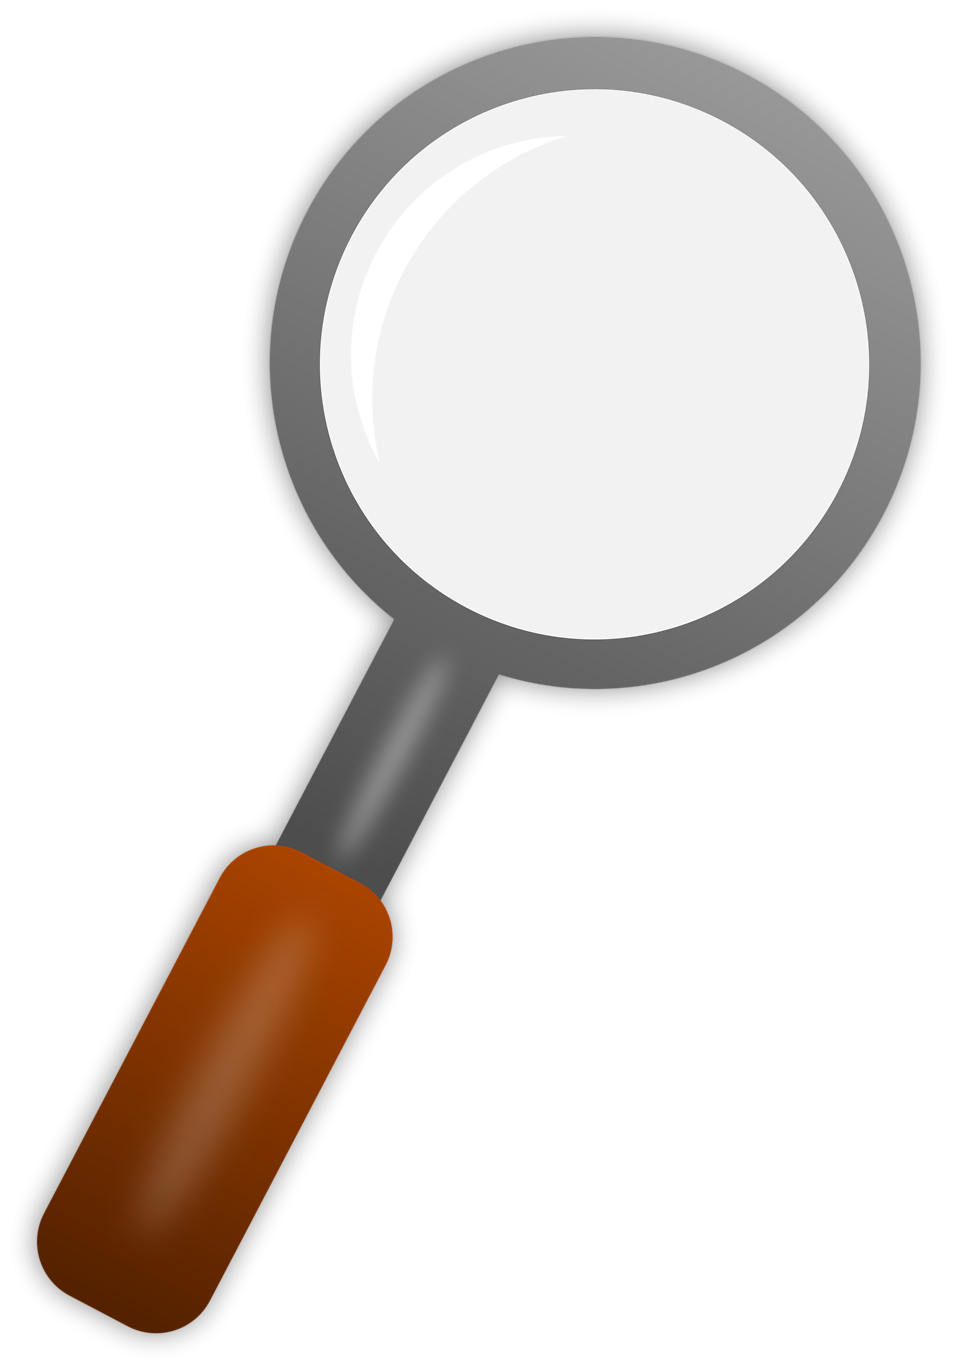 958x1371 Magnifying Glass Free Stock Photo A Magnifying Clip Art